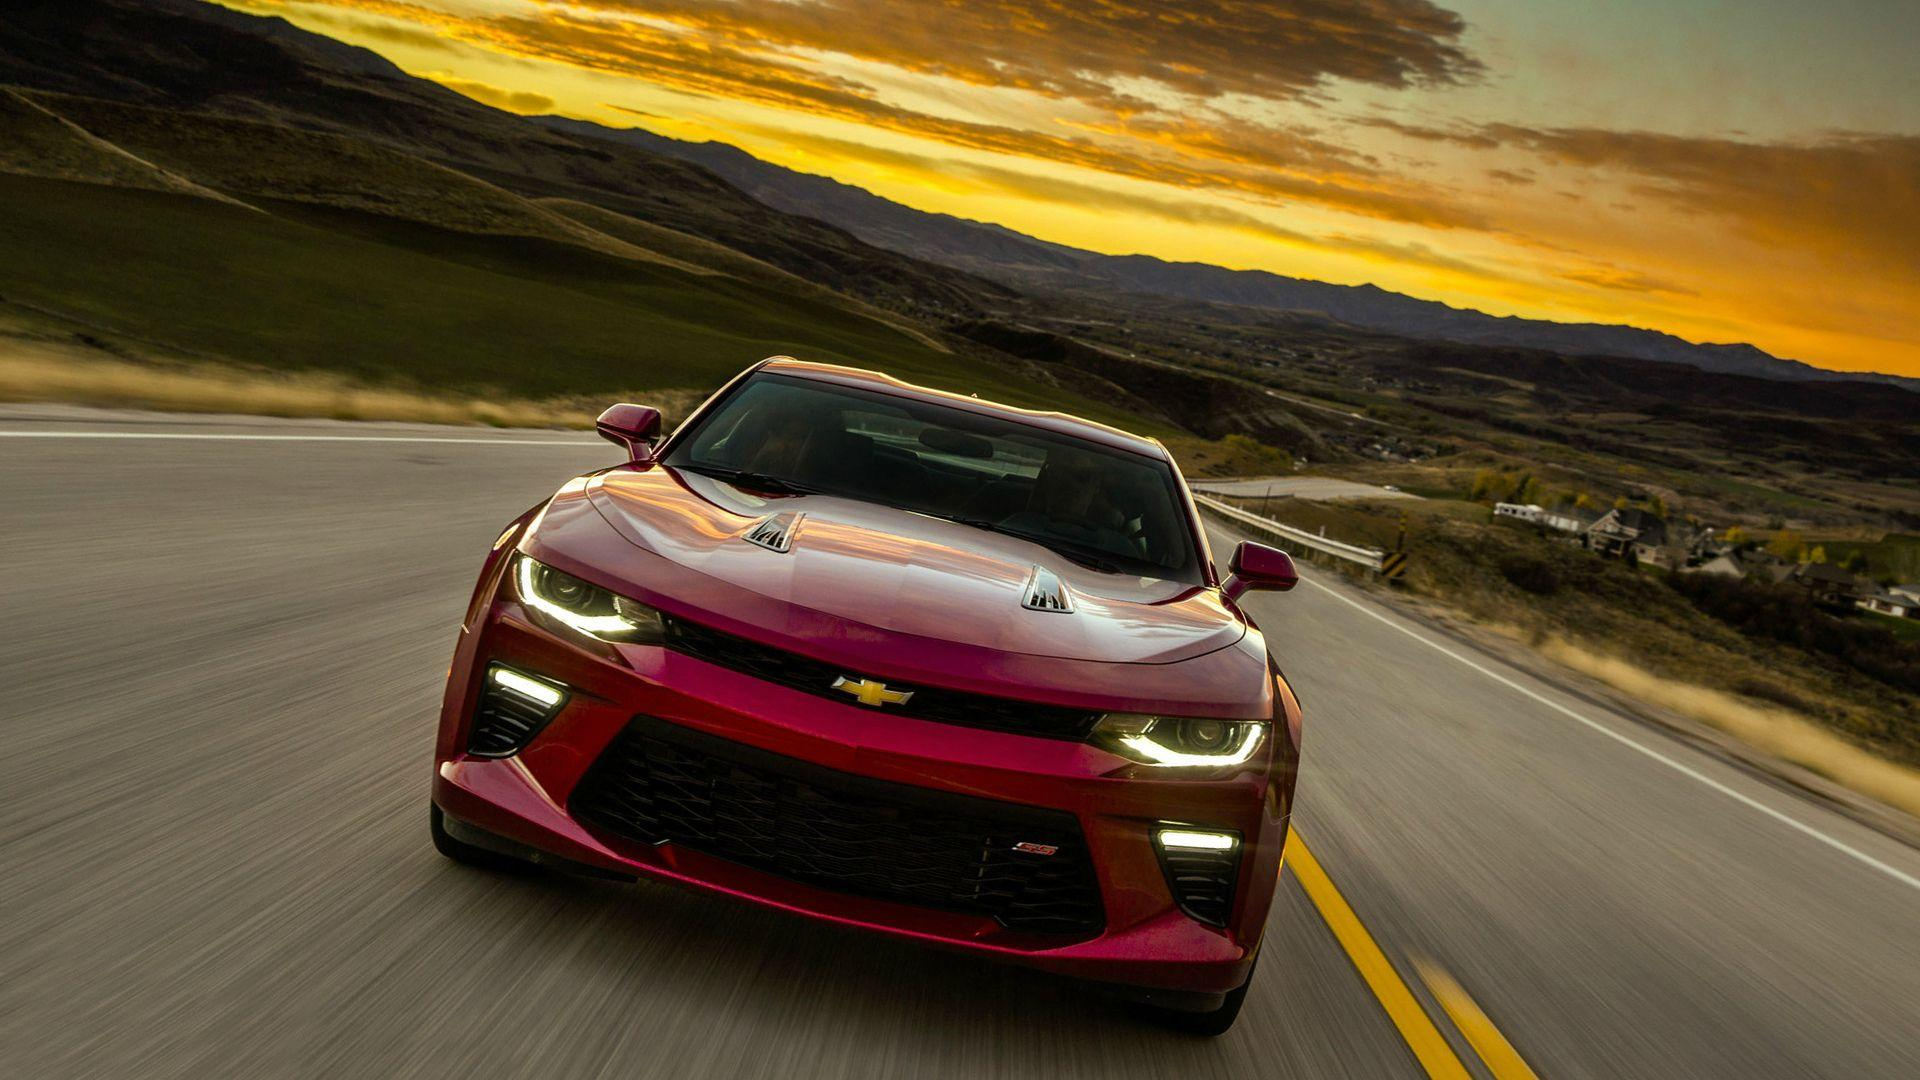 2019 Chevrolet Camaro Wallpapers Wallpaper Cave